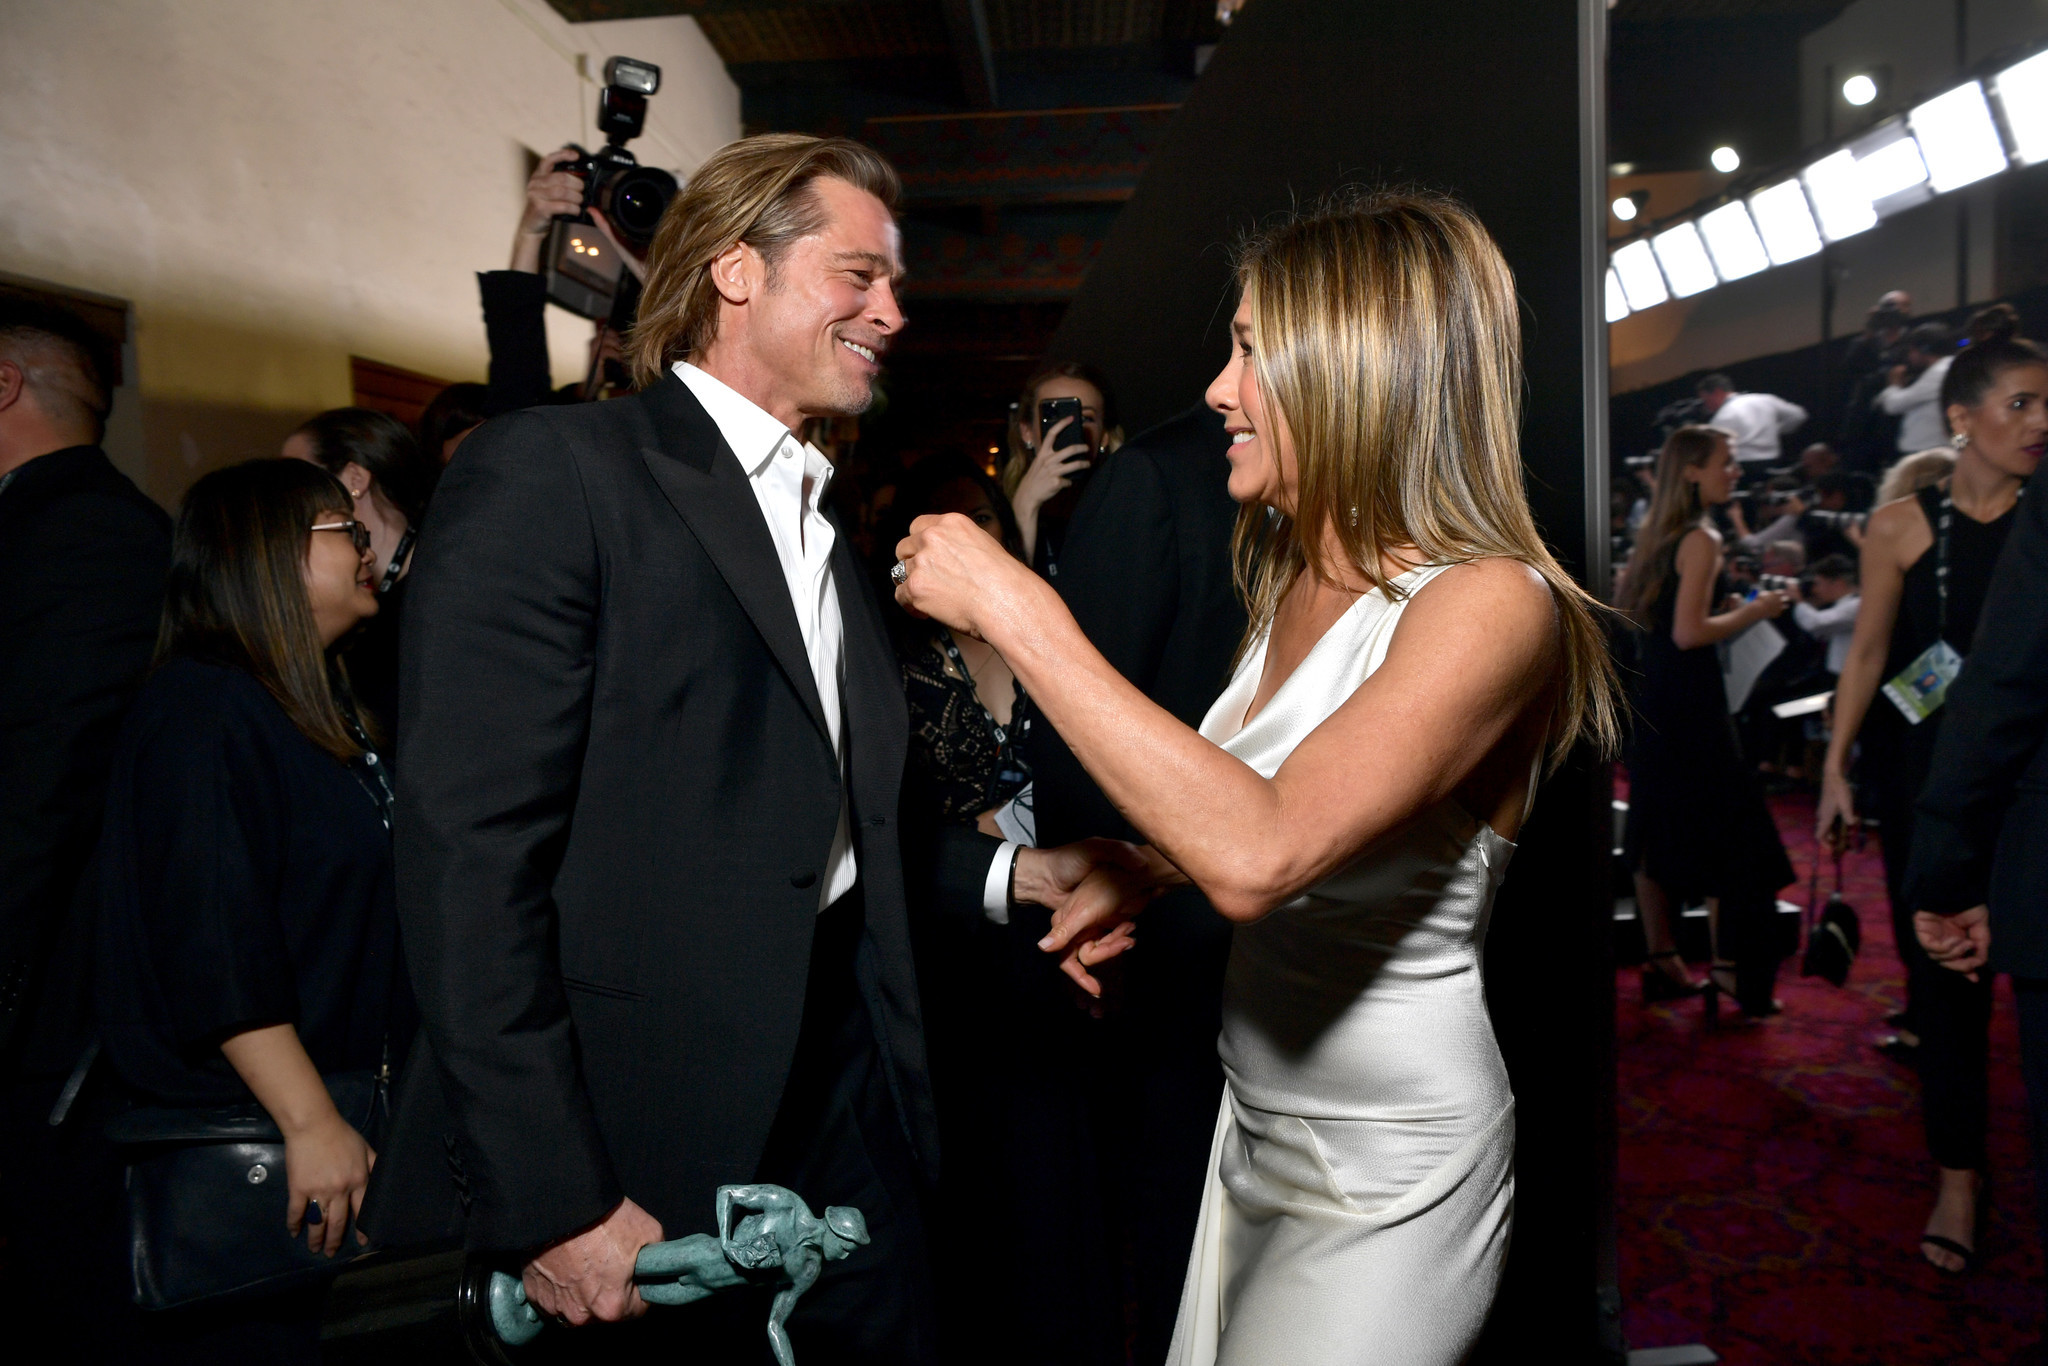 Brad Pitt and Jennifer Aniston reunite after SAG award wins — and everyone swoons